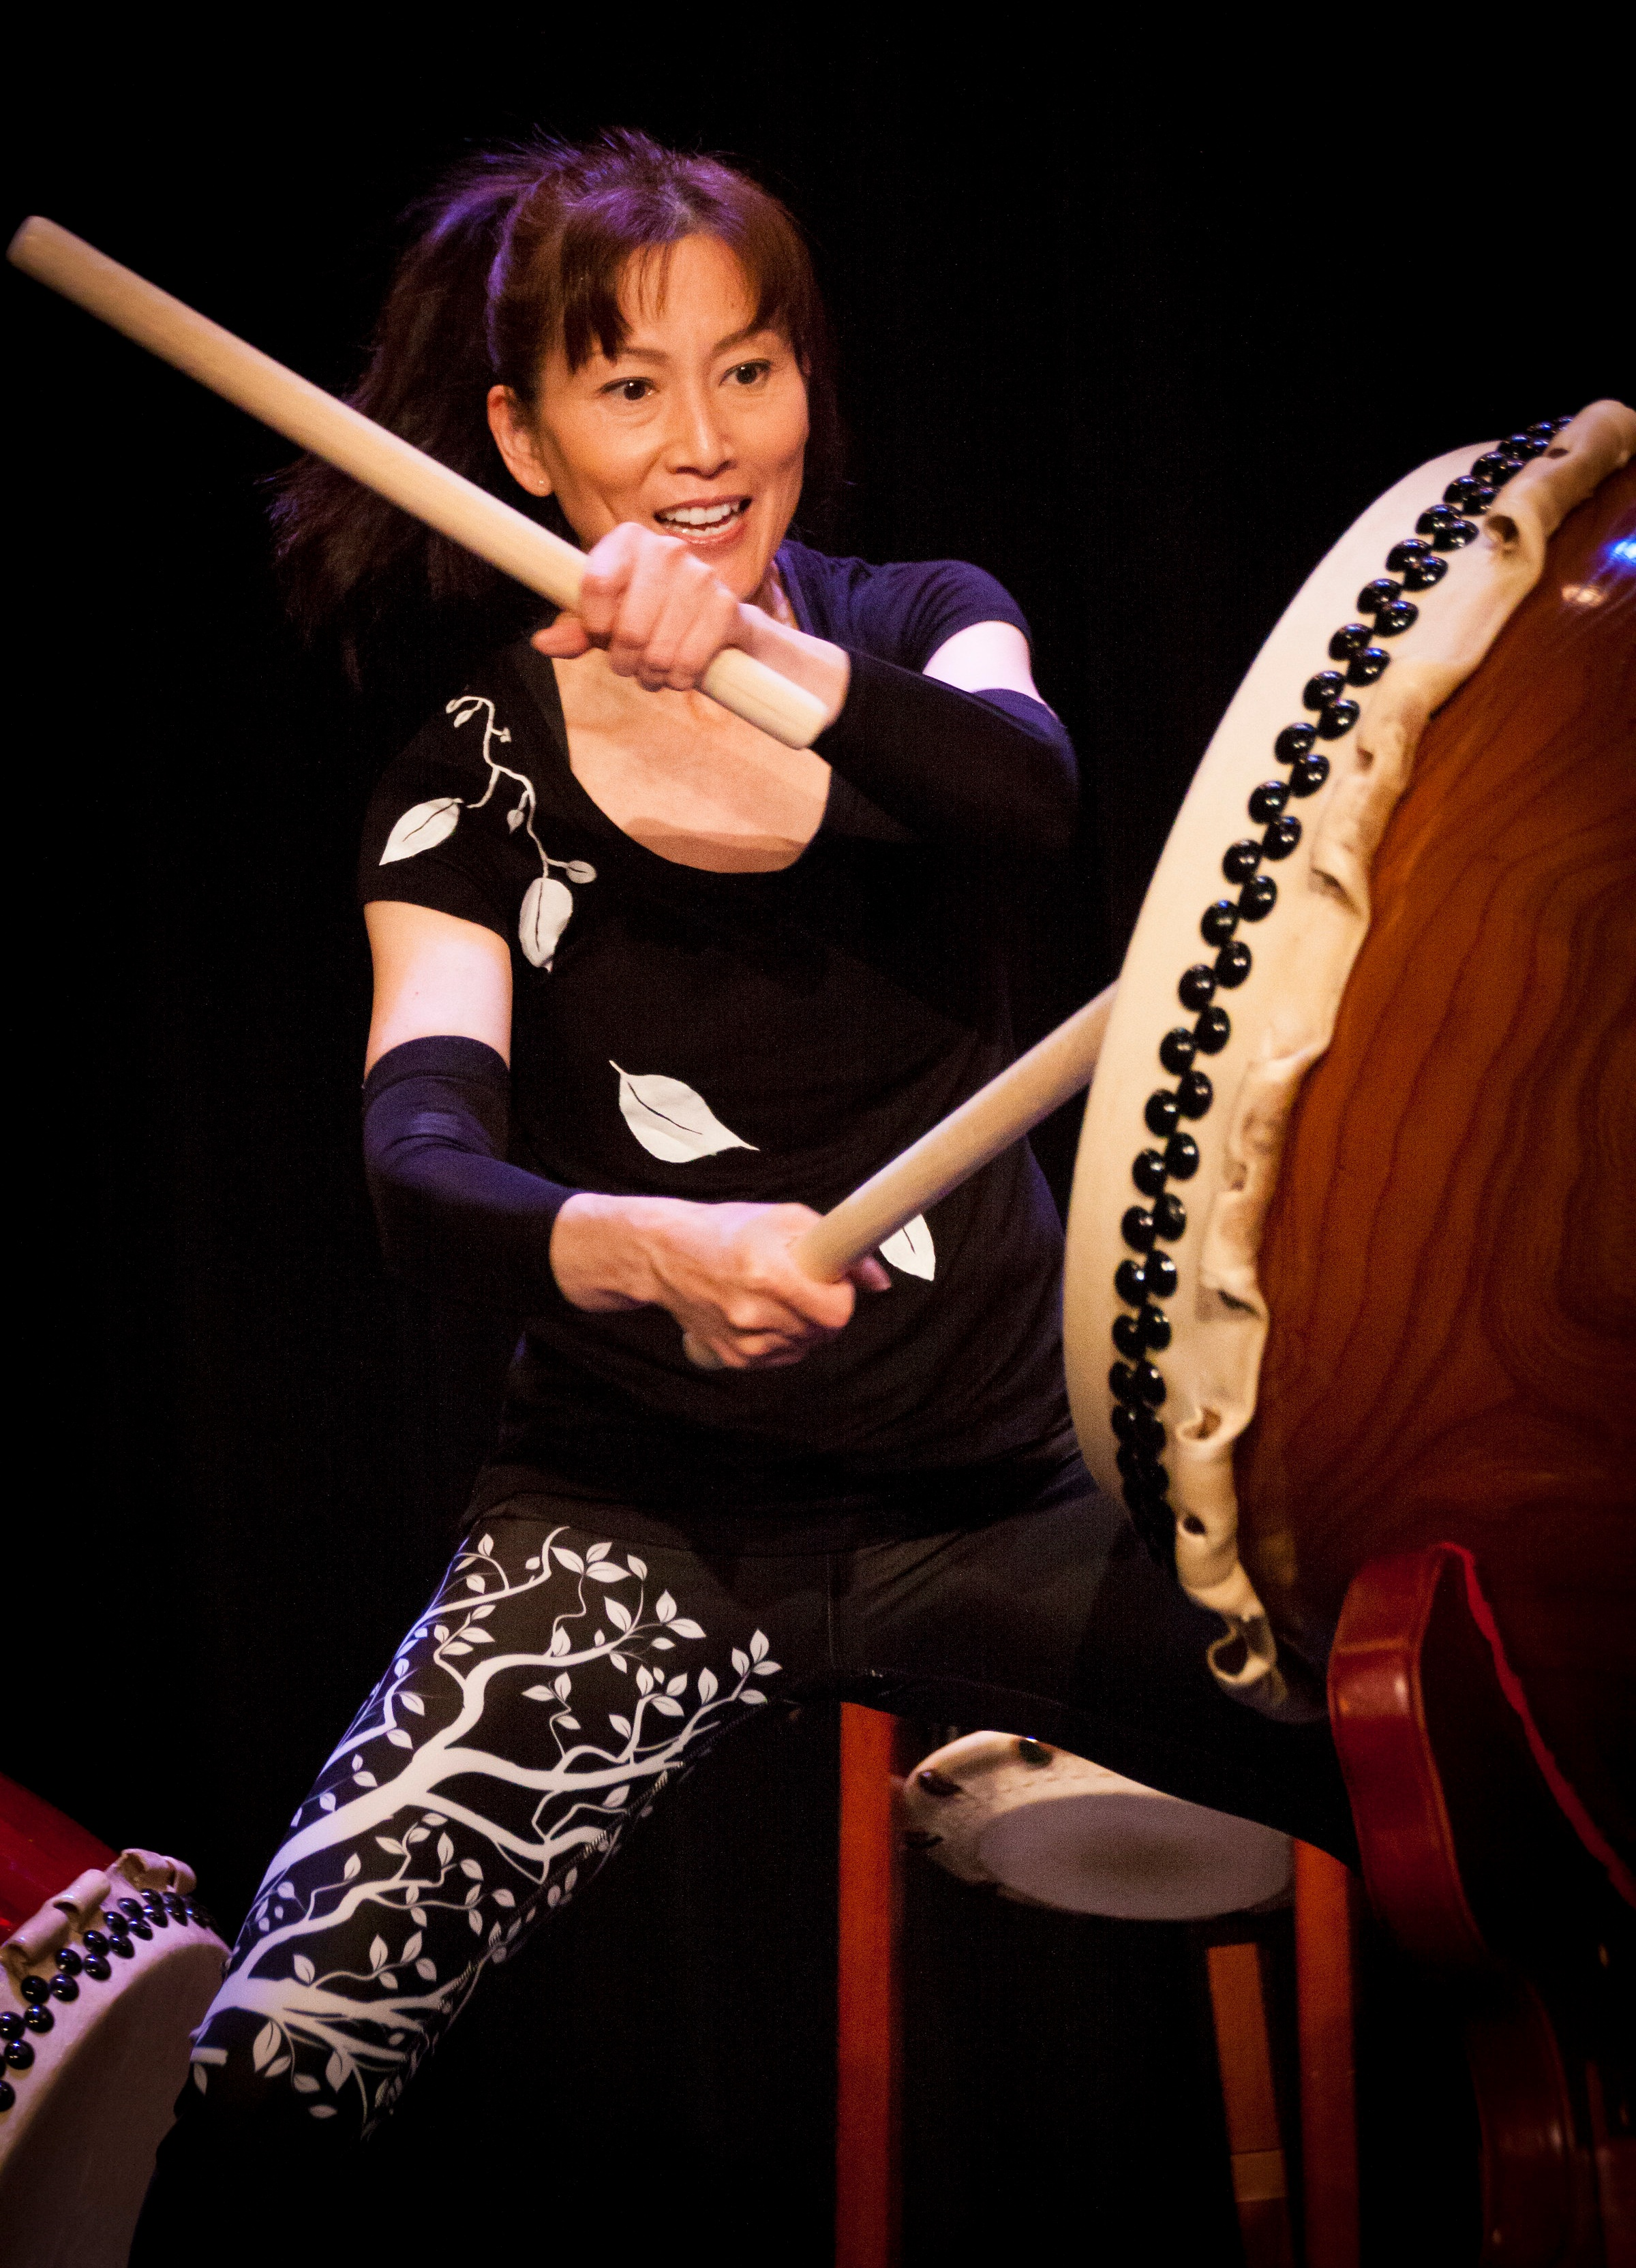 Godaiko Drummers - You can't just listen to taiko drumming, you have to feel it! Our popular Godaiko Drummers are always ready to bring an exciting program of Japanese taiko drumming to our local community.